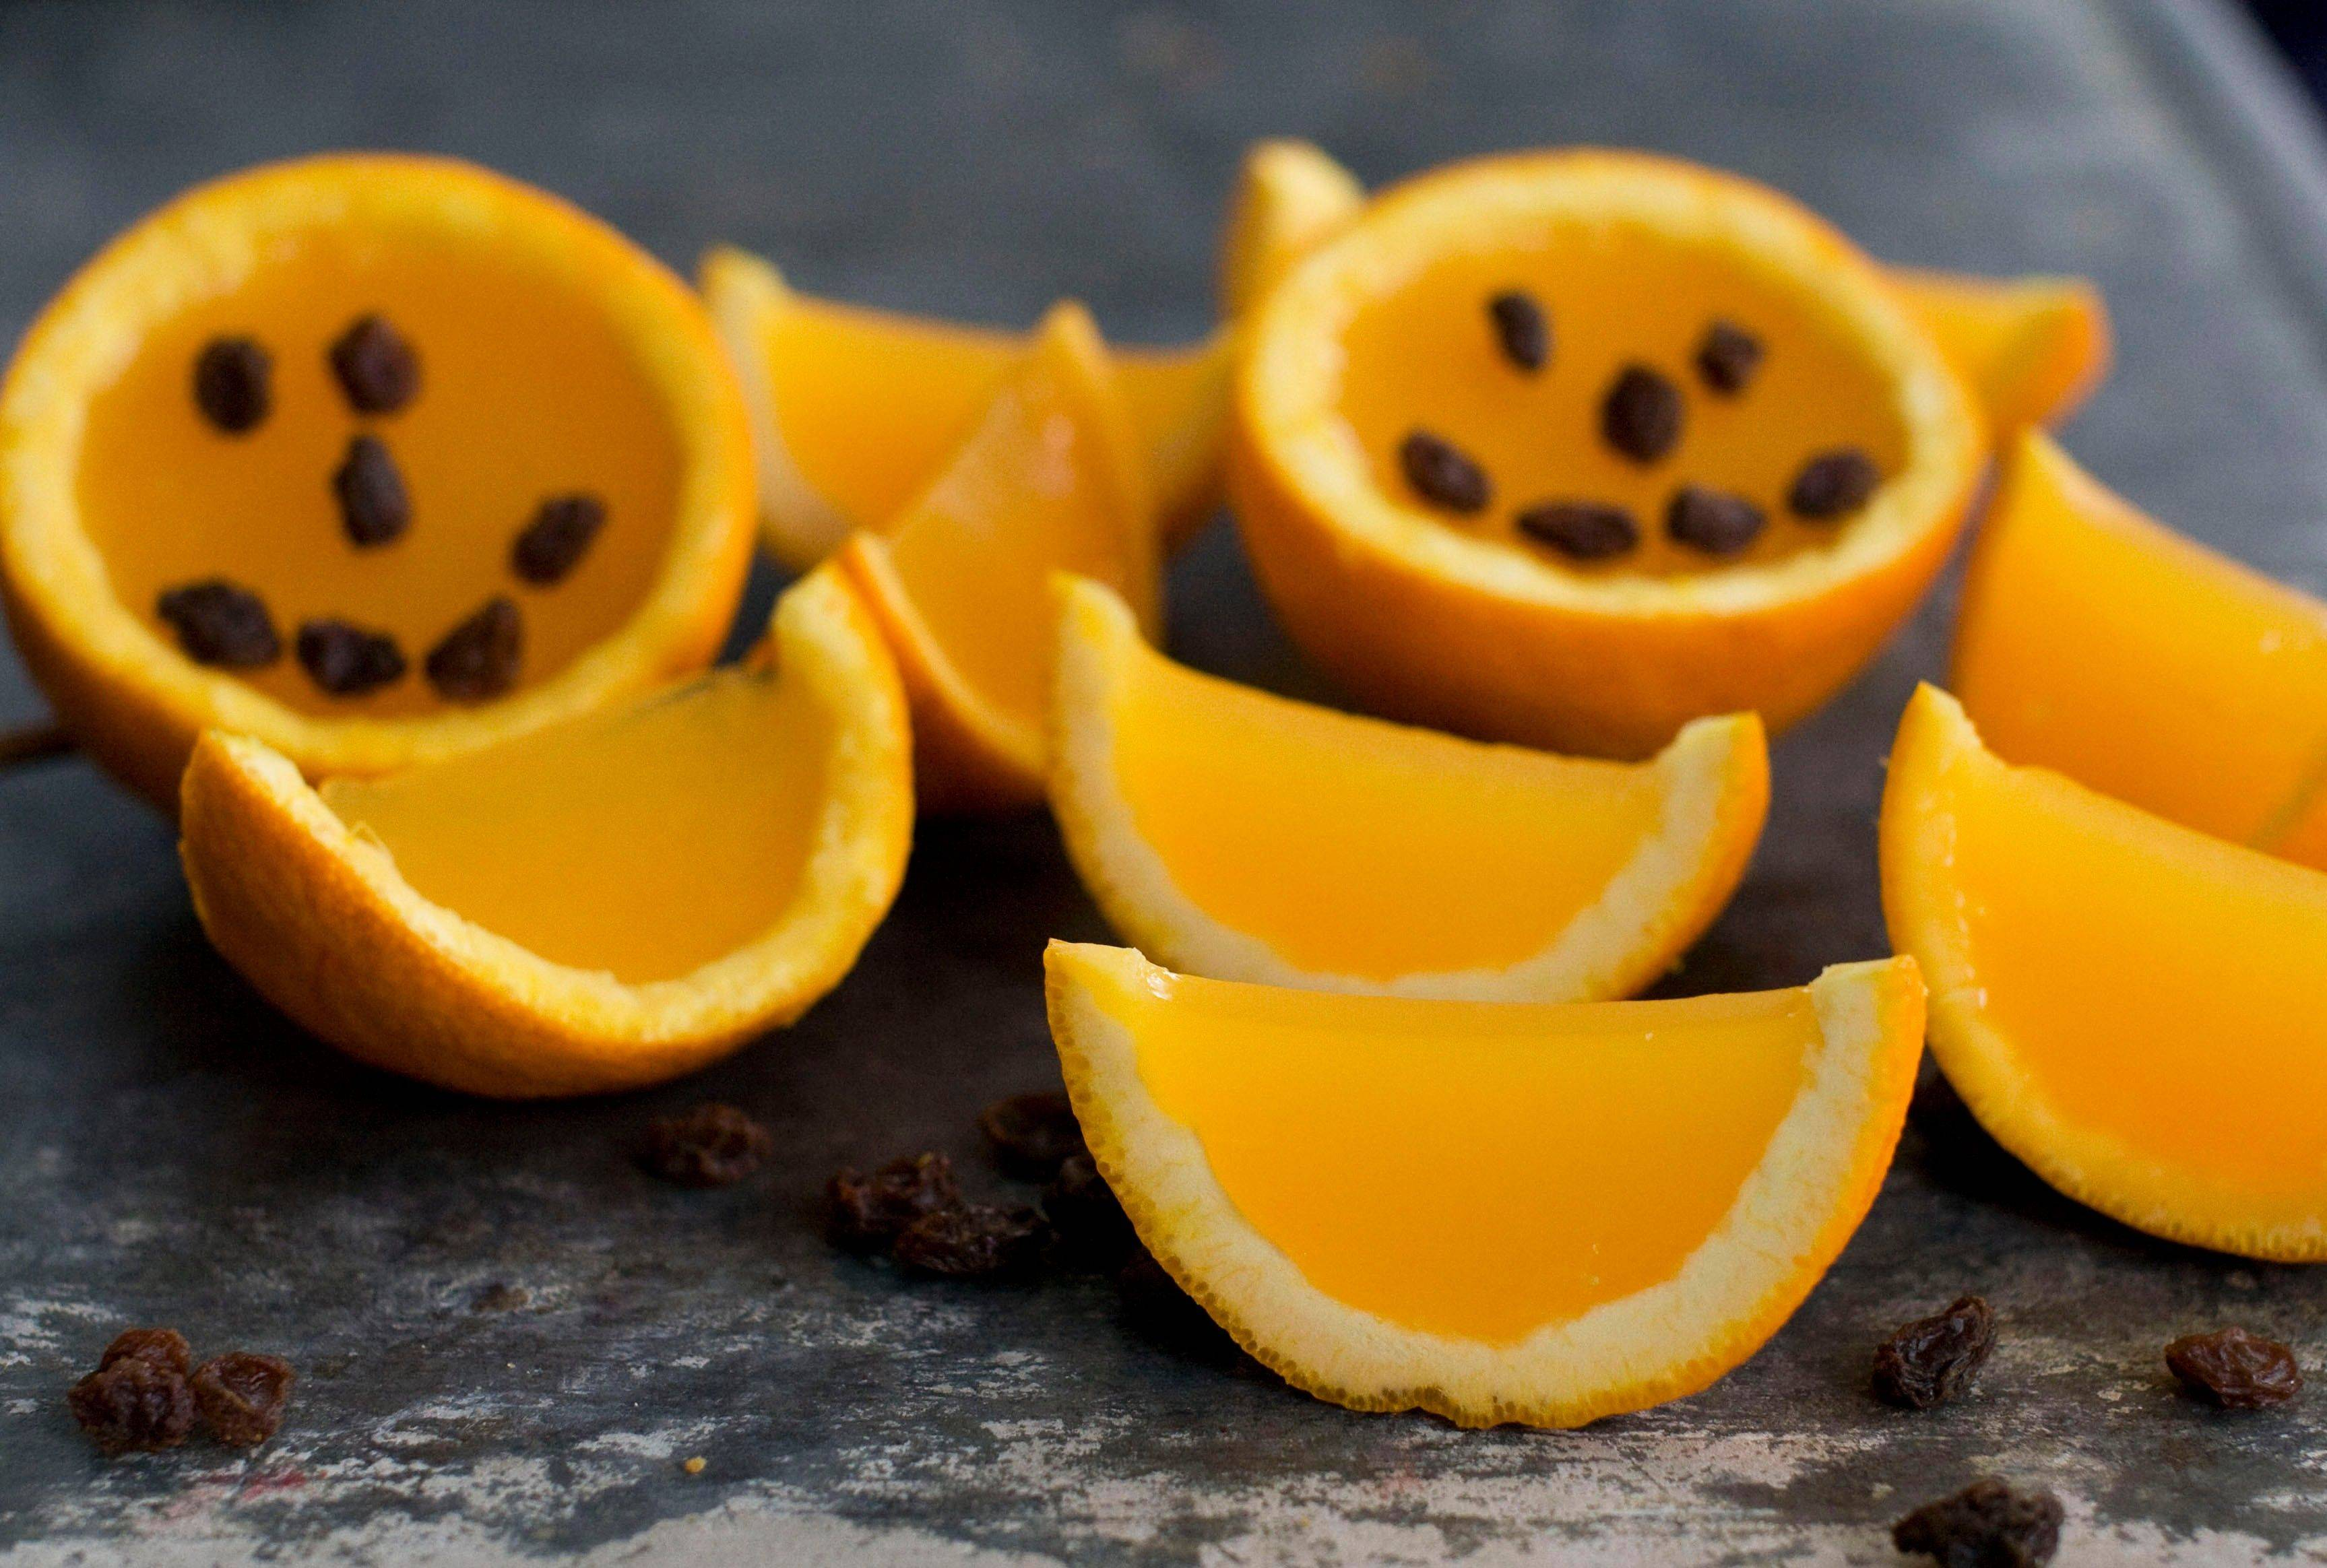 For a healthy Halloween treat, try Jiggly Orange halves and wedges.